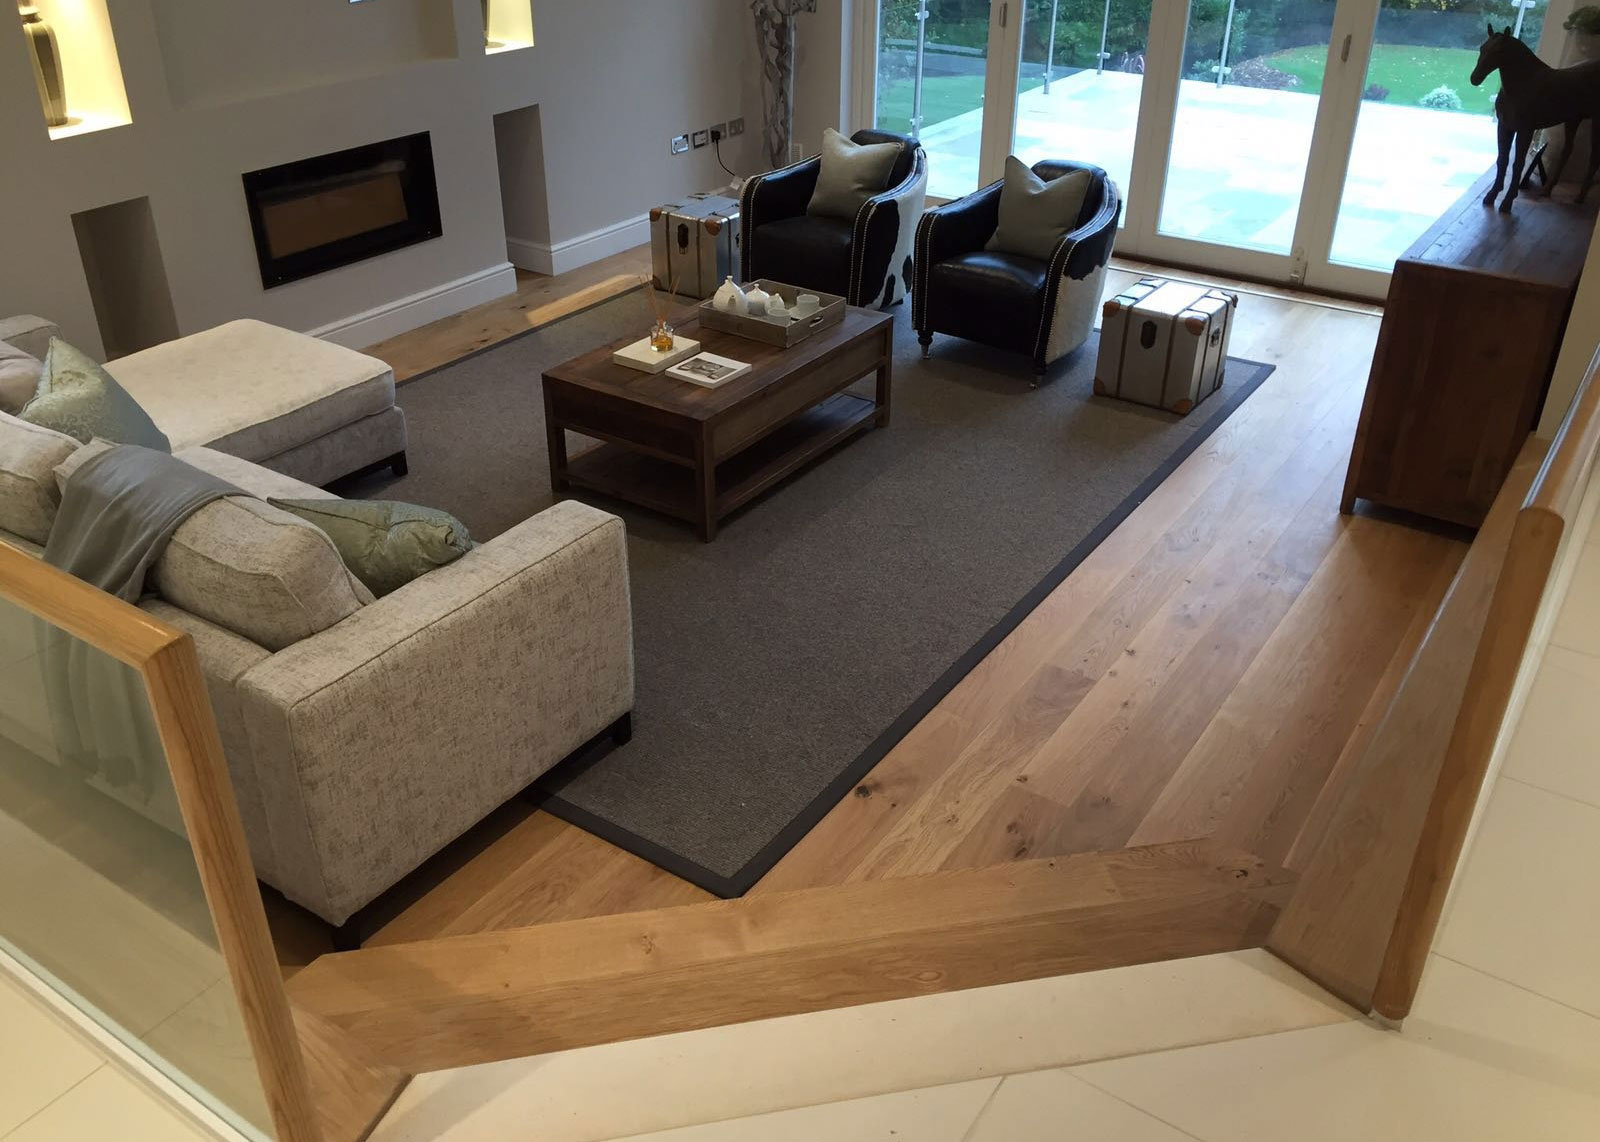 Surrey S Flooring Experts Take A Look At Our Work